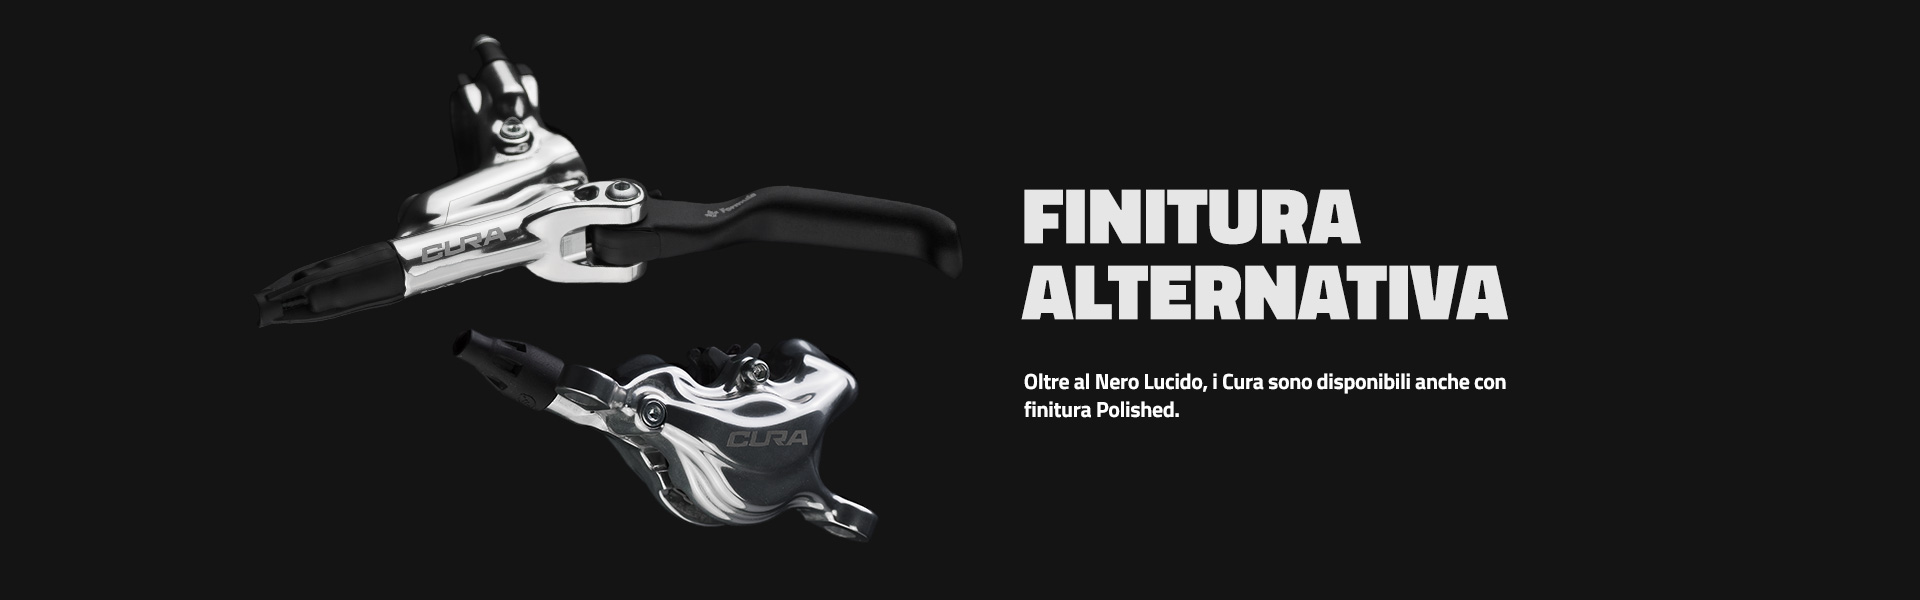 cura-alt-finish-ita